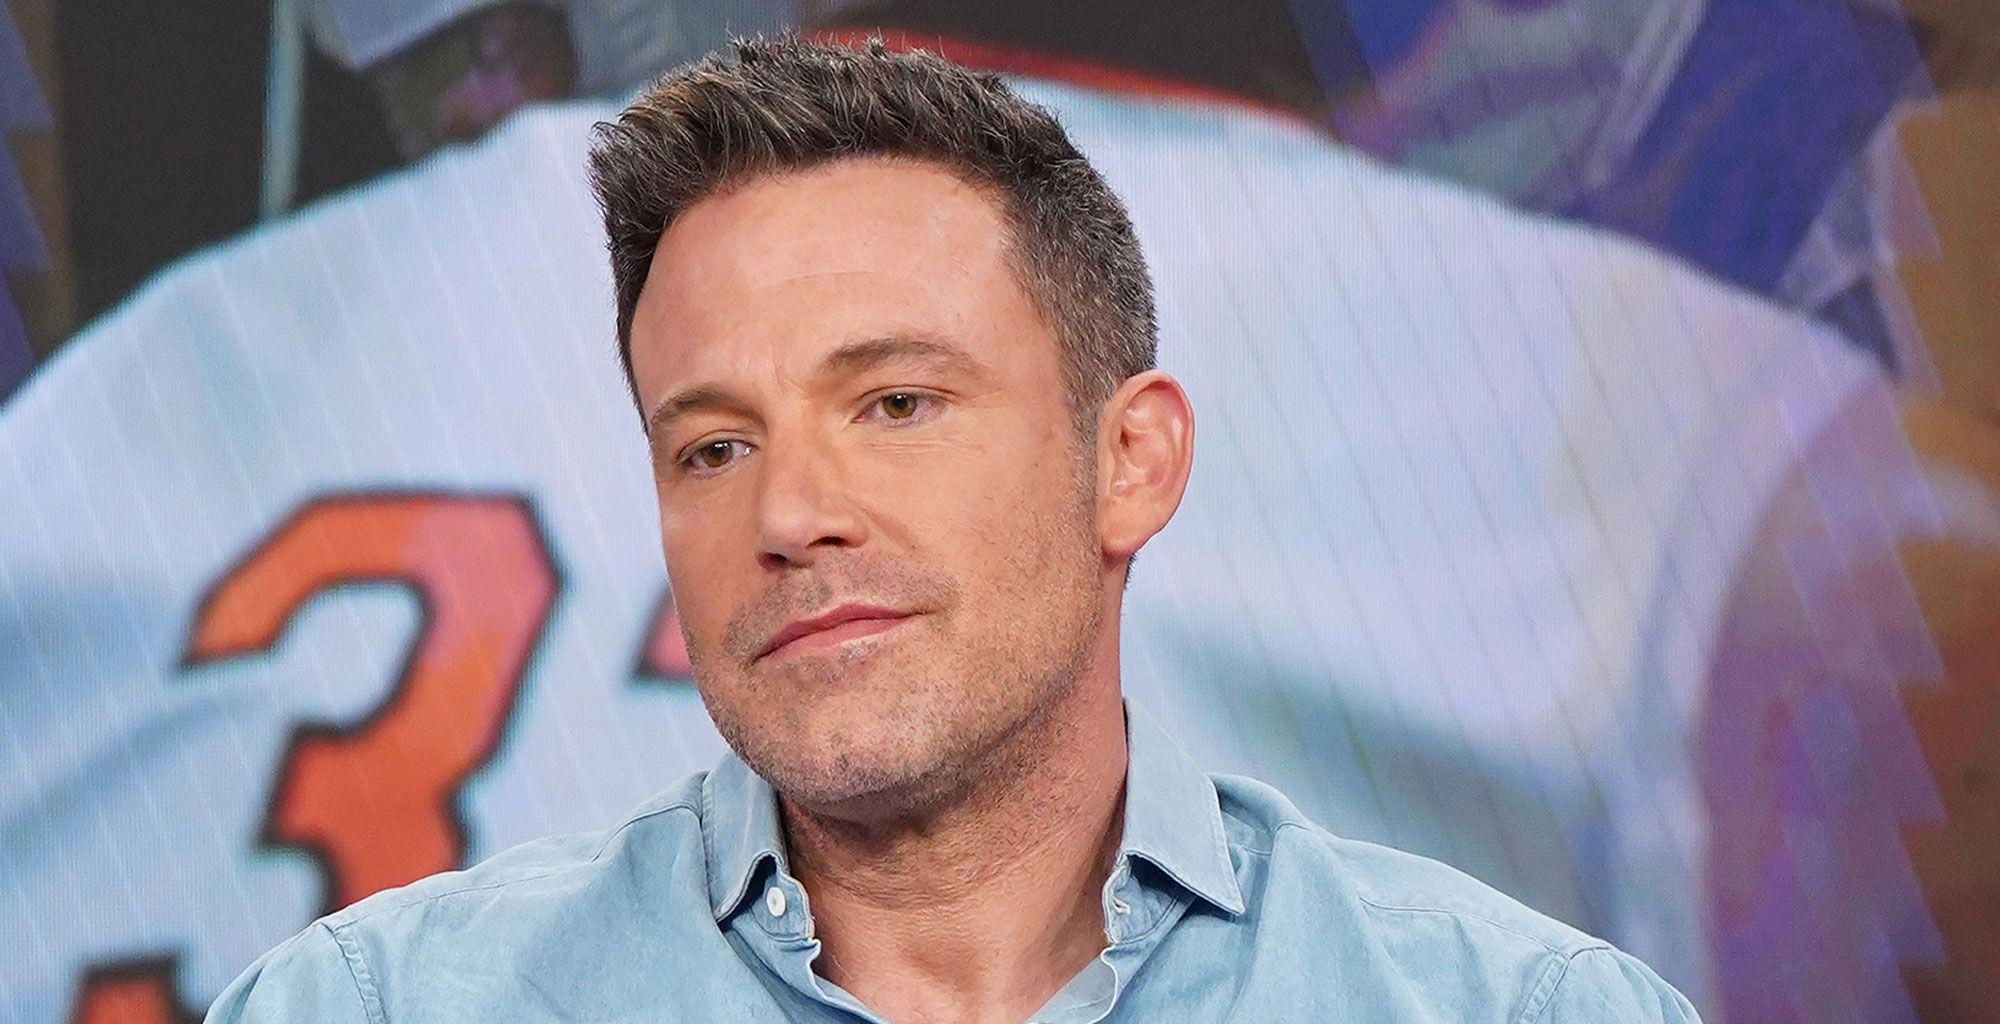 Ben Affleck Addresses The Reports He's Been On Dating Apps For Years!